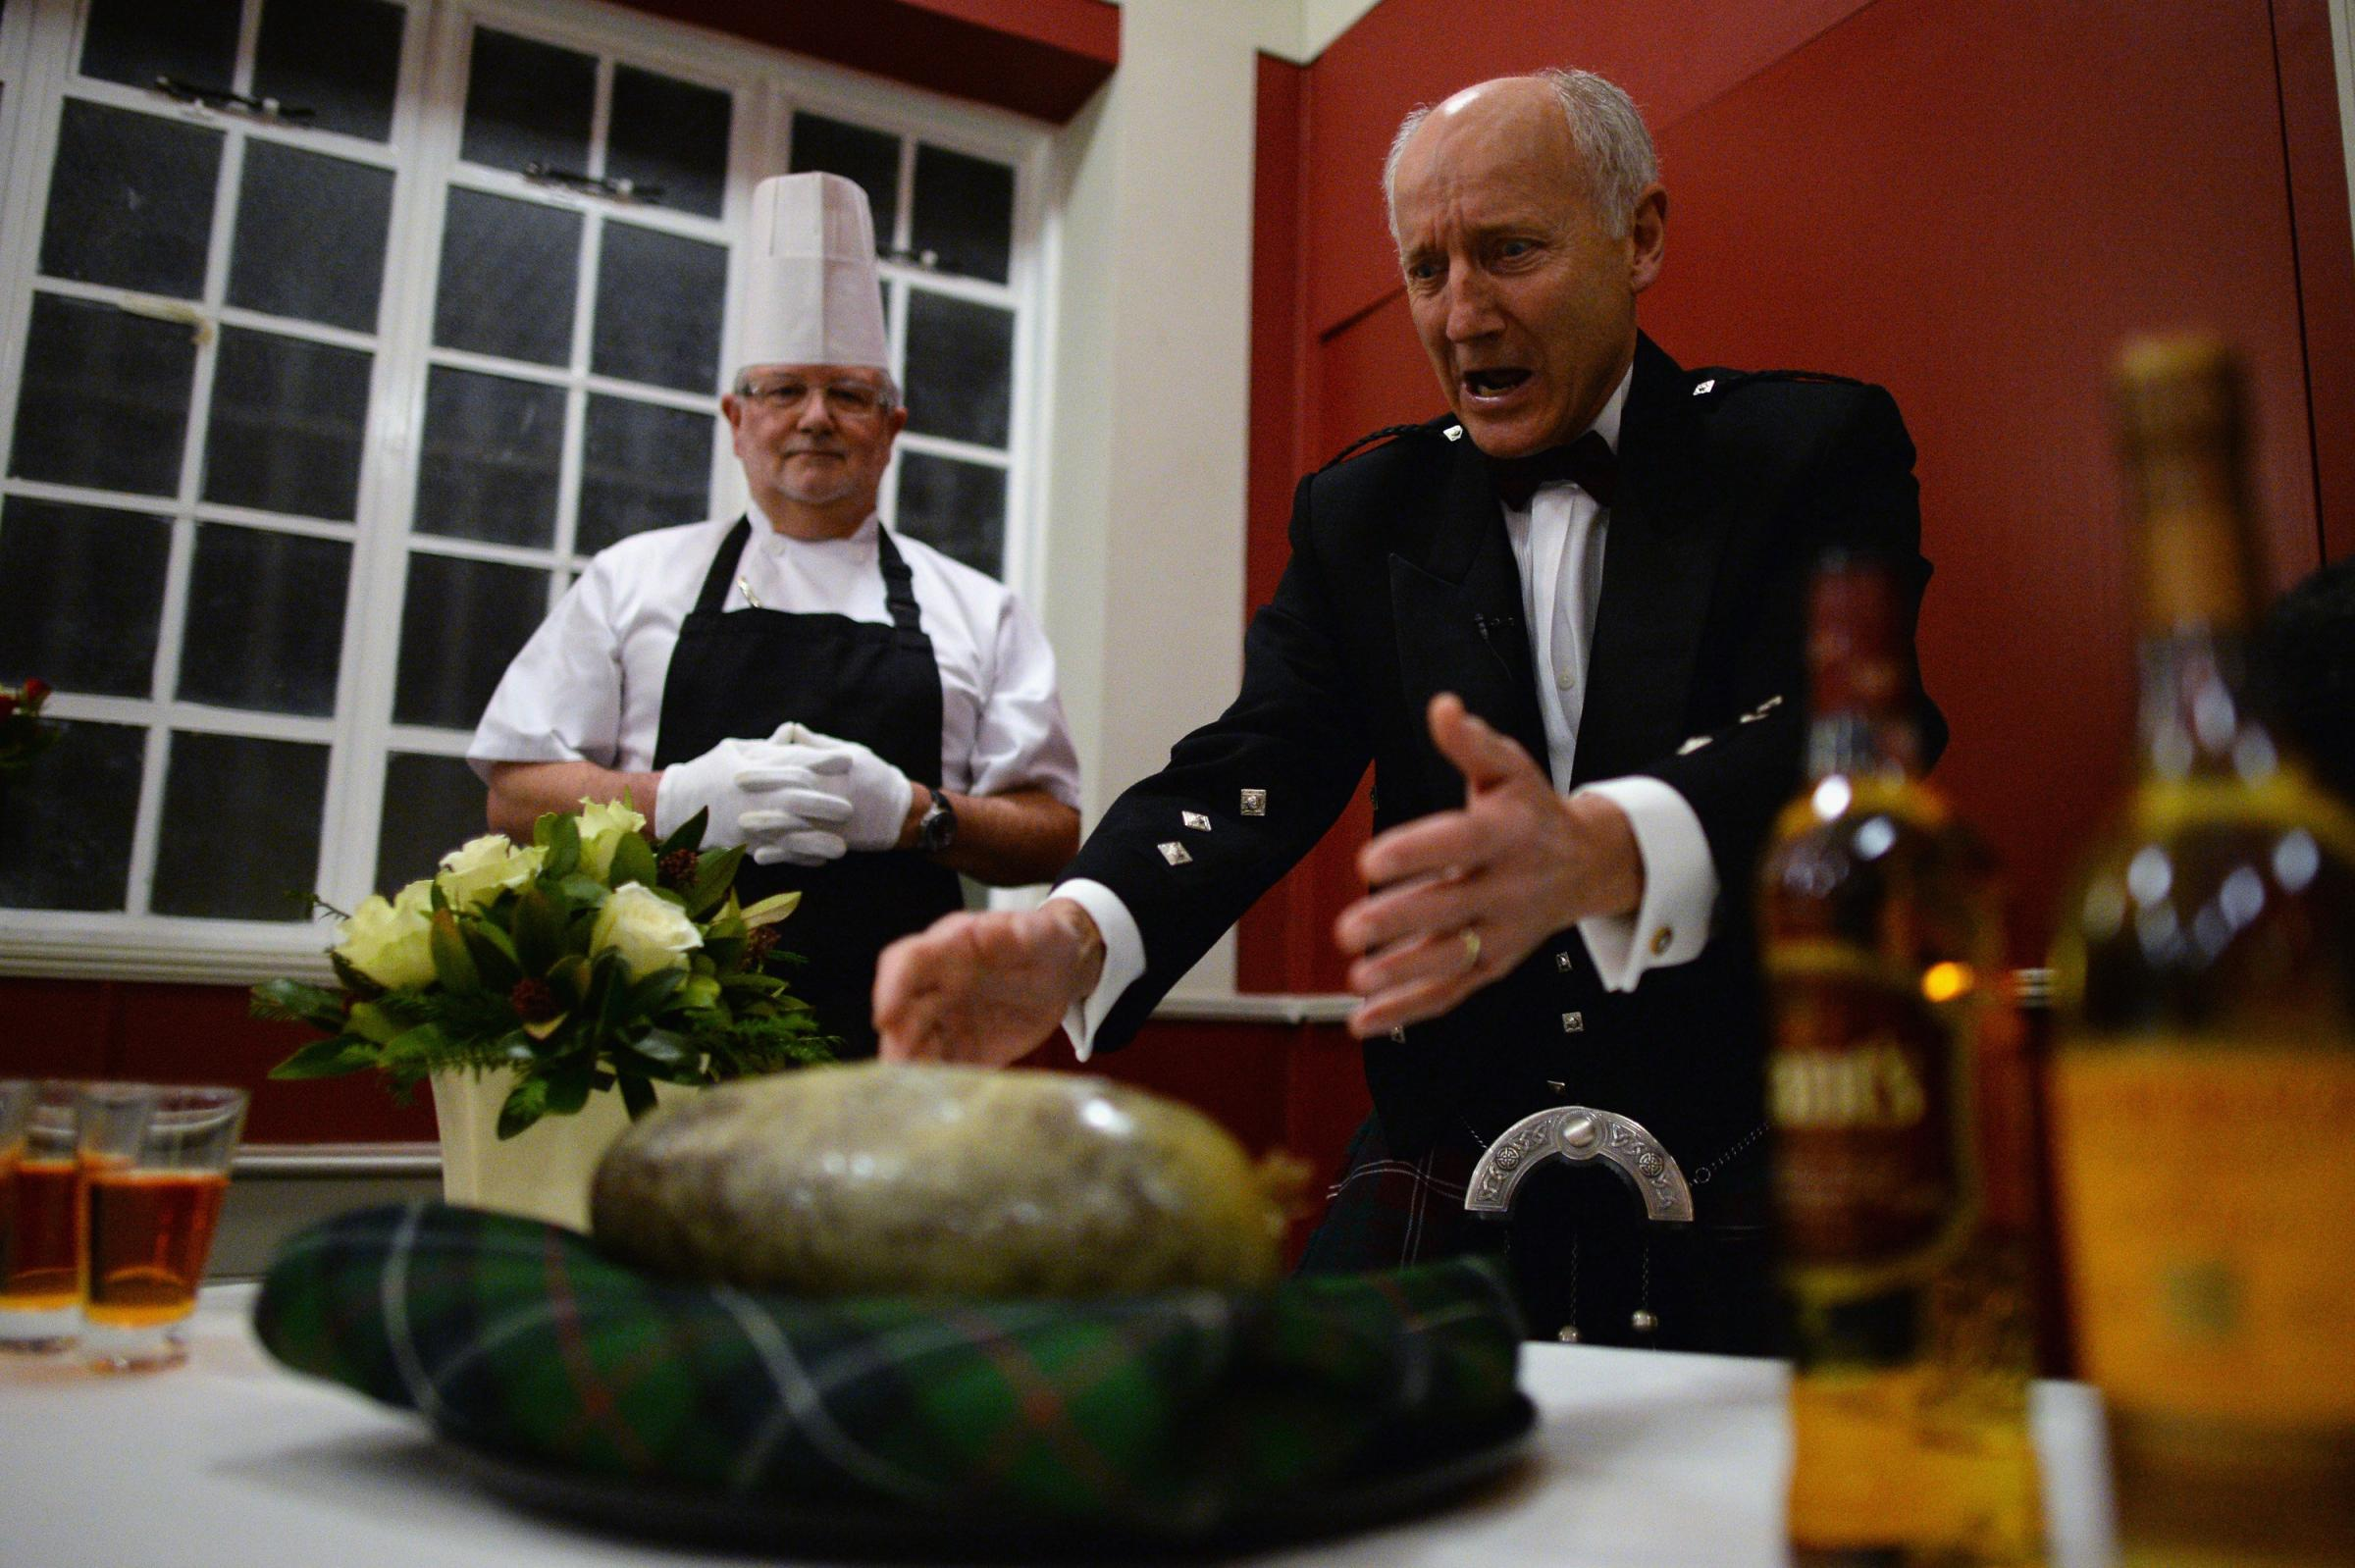 It'll be a busy week for Burns Suppers across Scotland